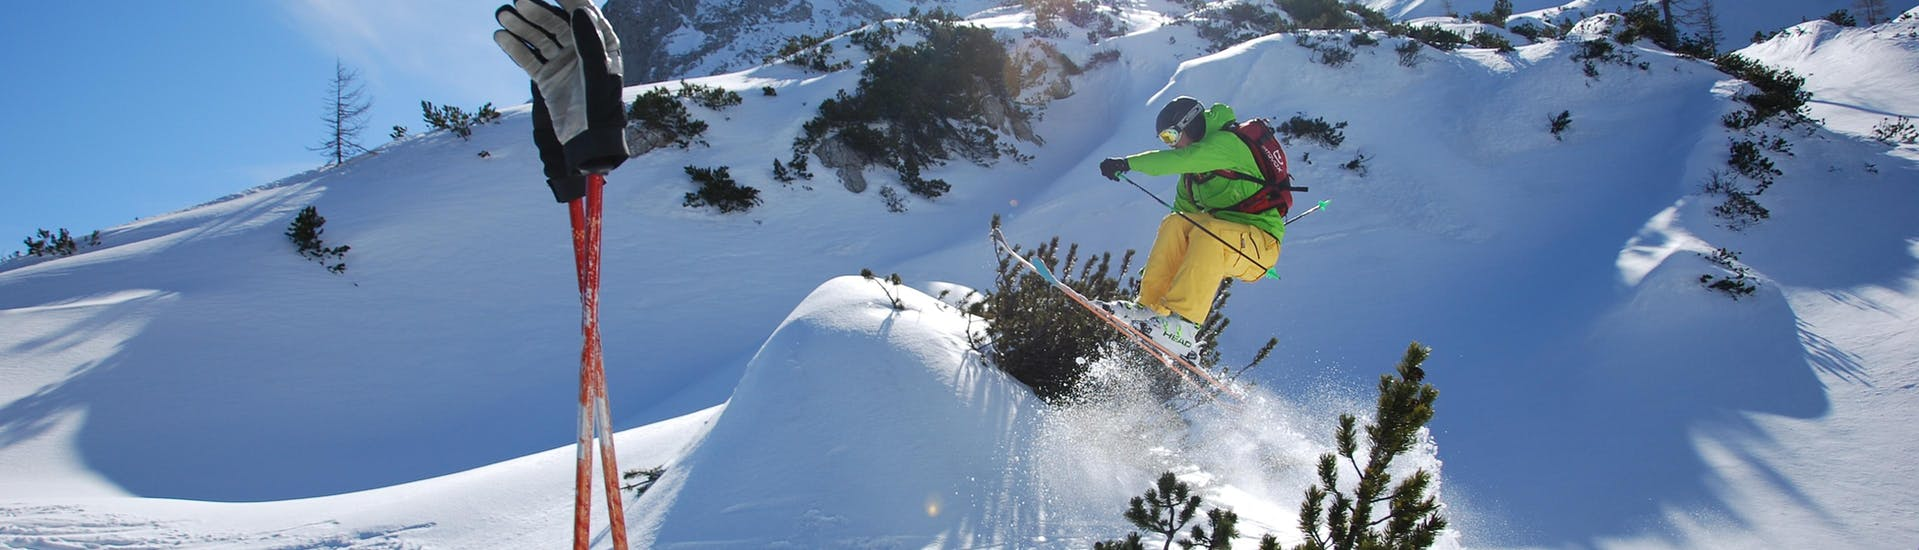 Freeride Private for Adults avec Skischule Gosau - Hero image